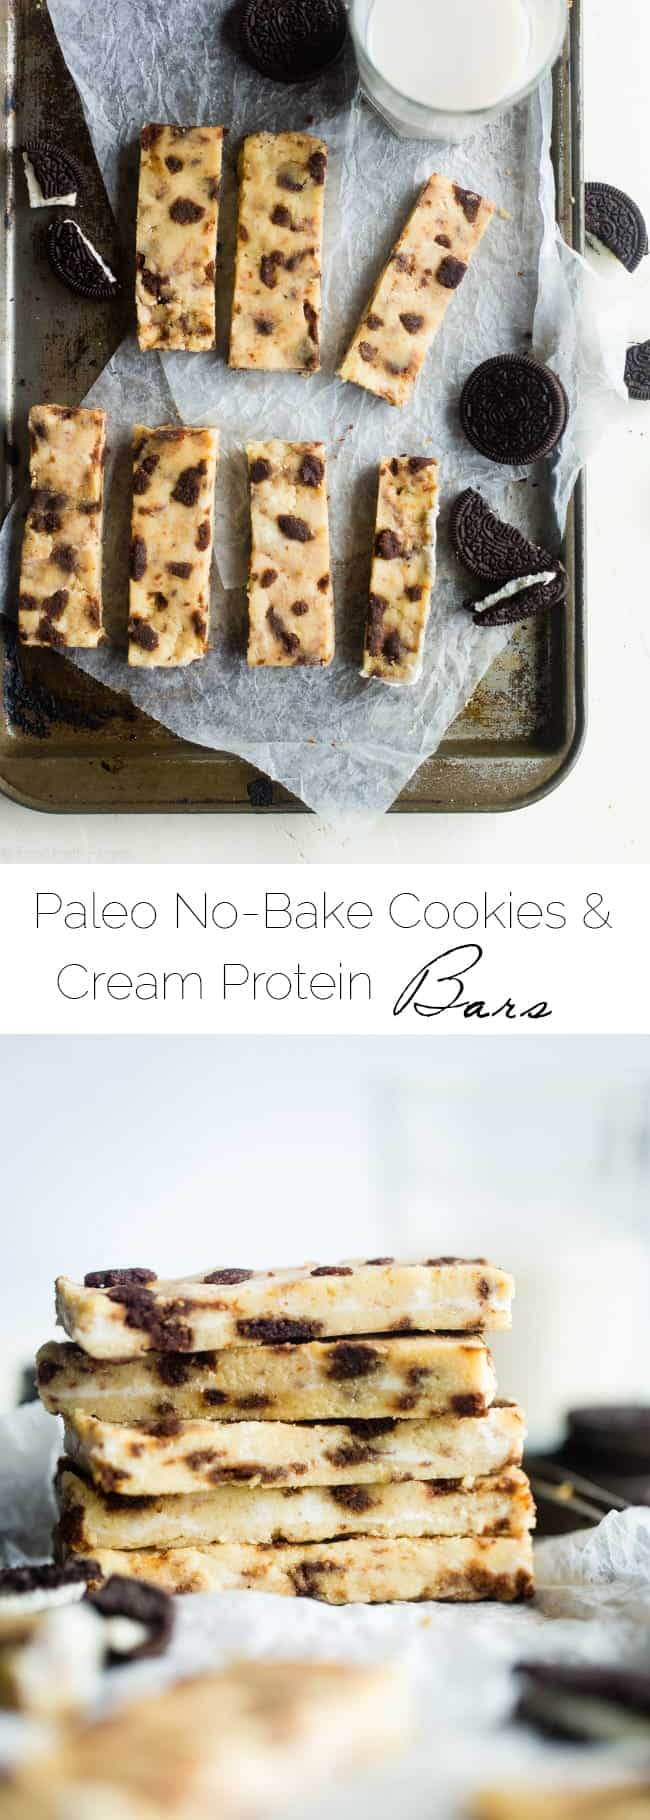 No-Bake Cookies and Cream Paleo Protein Bars - These no-bake cookies and cream paleo protein bars taste like the classic cookie! They're a healthy, gluten free and portable snack for busy days or back to school lunch boxes, that are so easy to make! | Foodfaithfitness.com | @FoodFaithFit